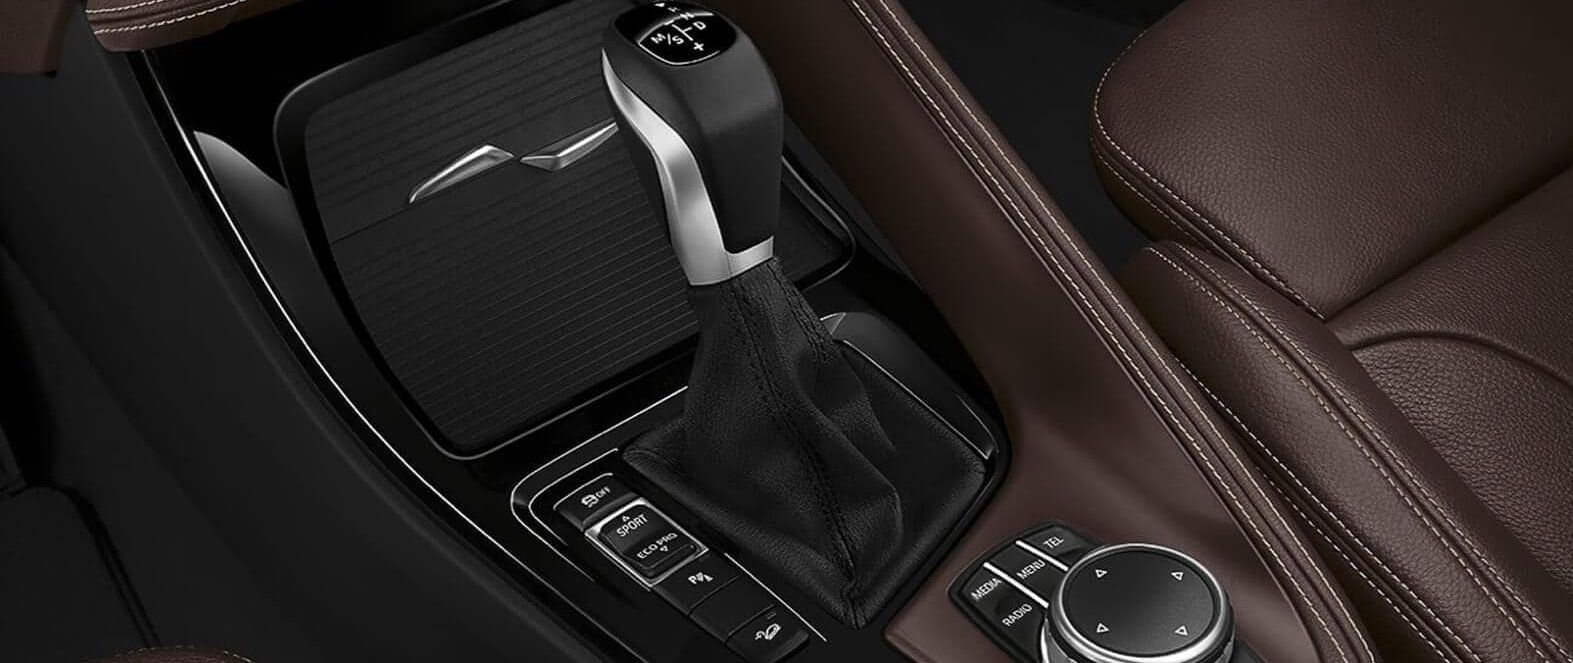 2019 BMW X1 Gear Shift